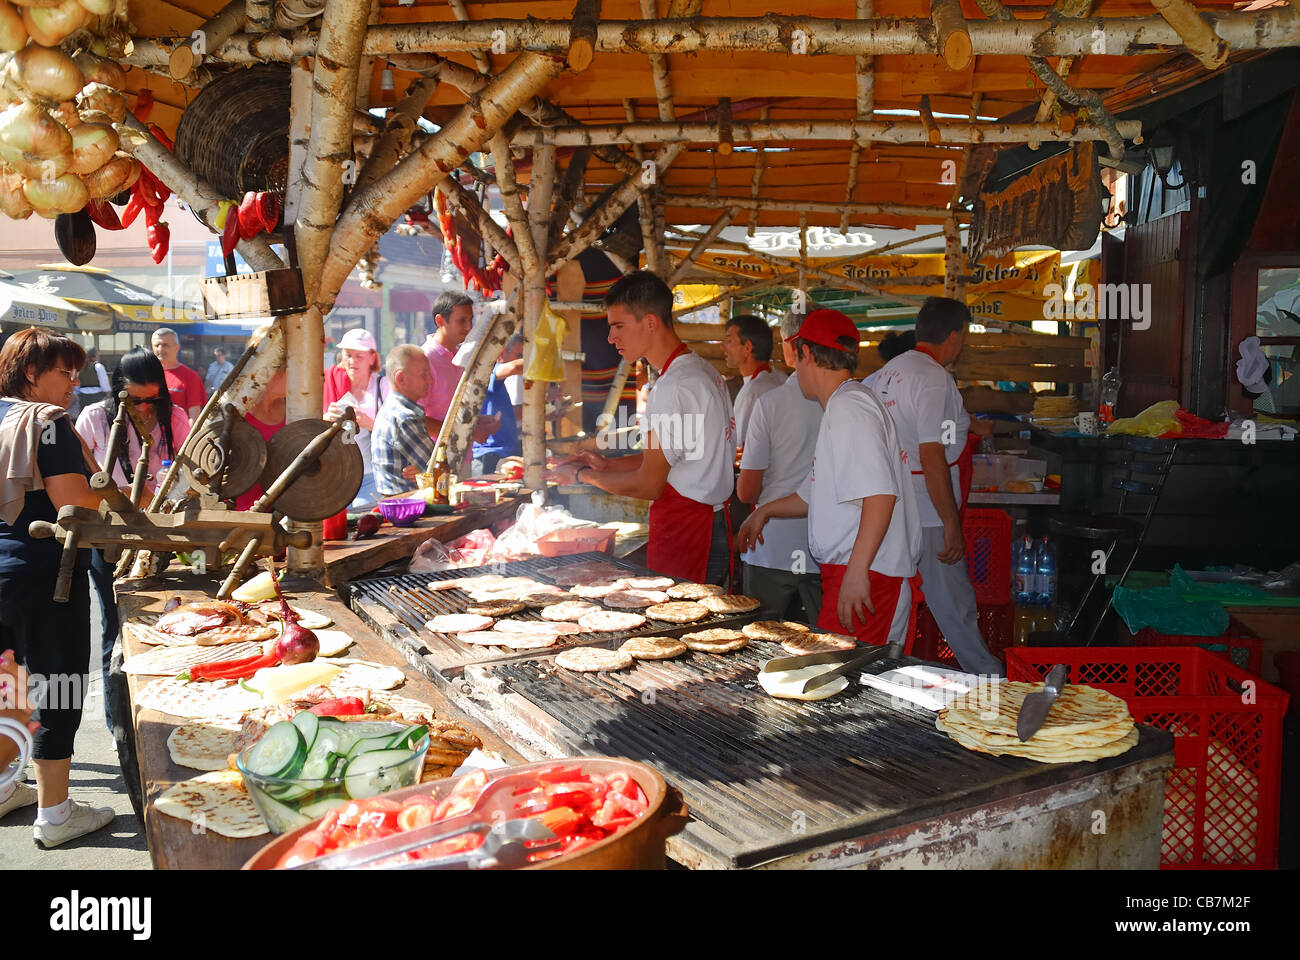 Serbia August 2011 : 51st Guca International Trumpet Festival. A gastronomic stand. - Stock Image